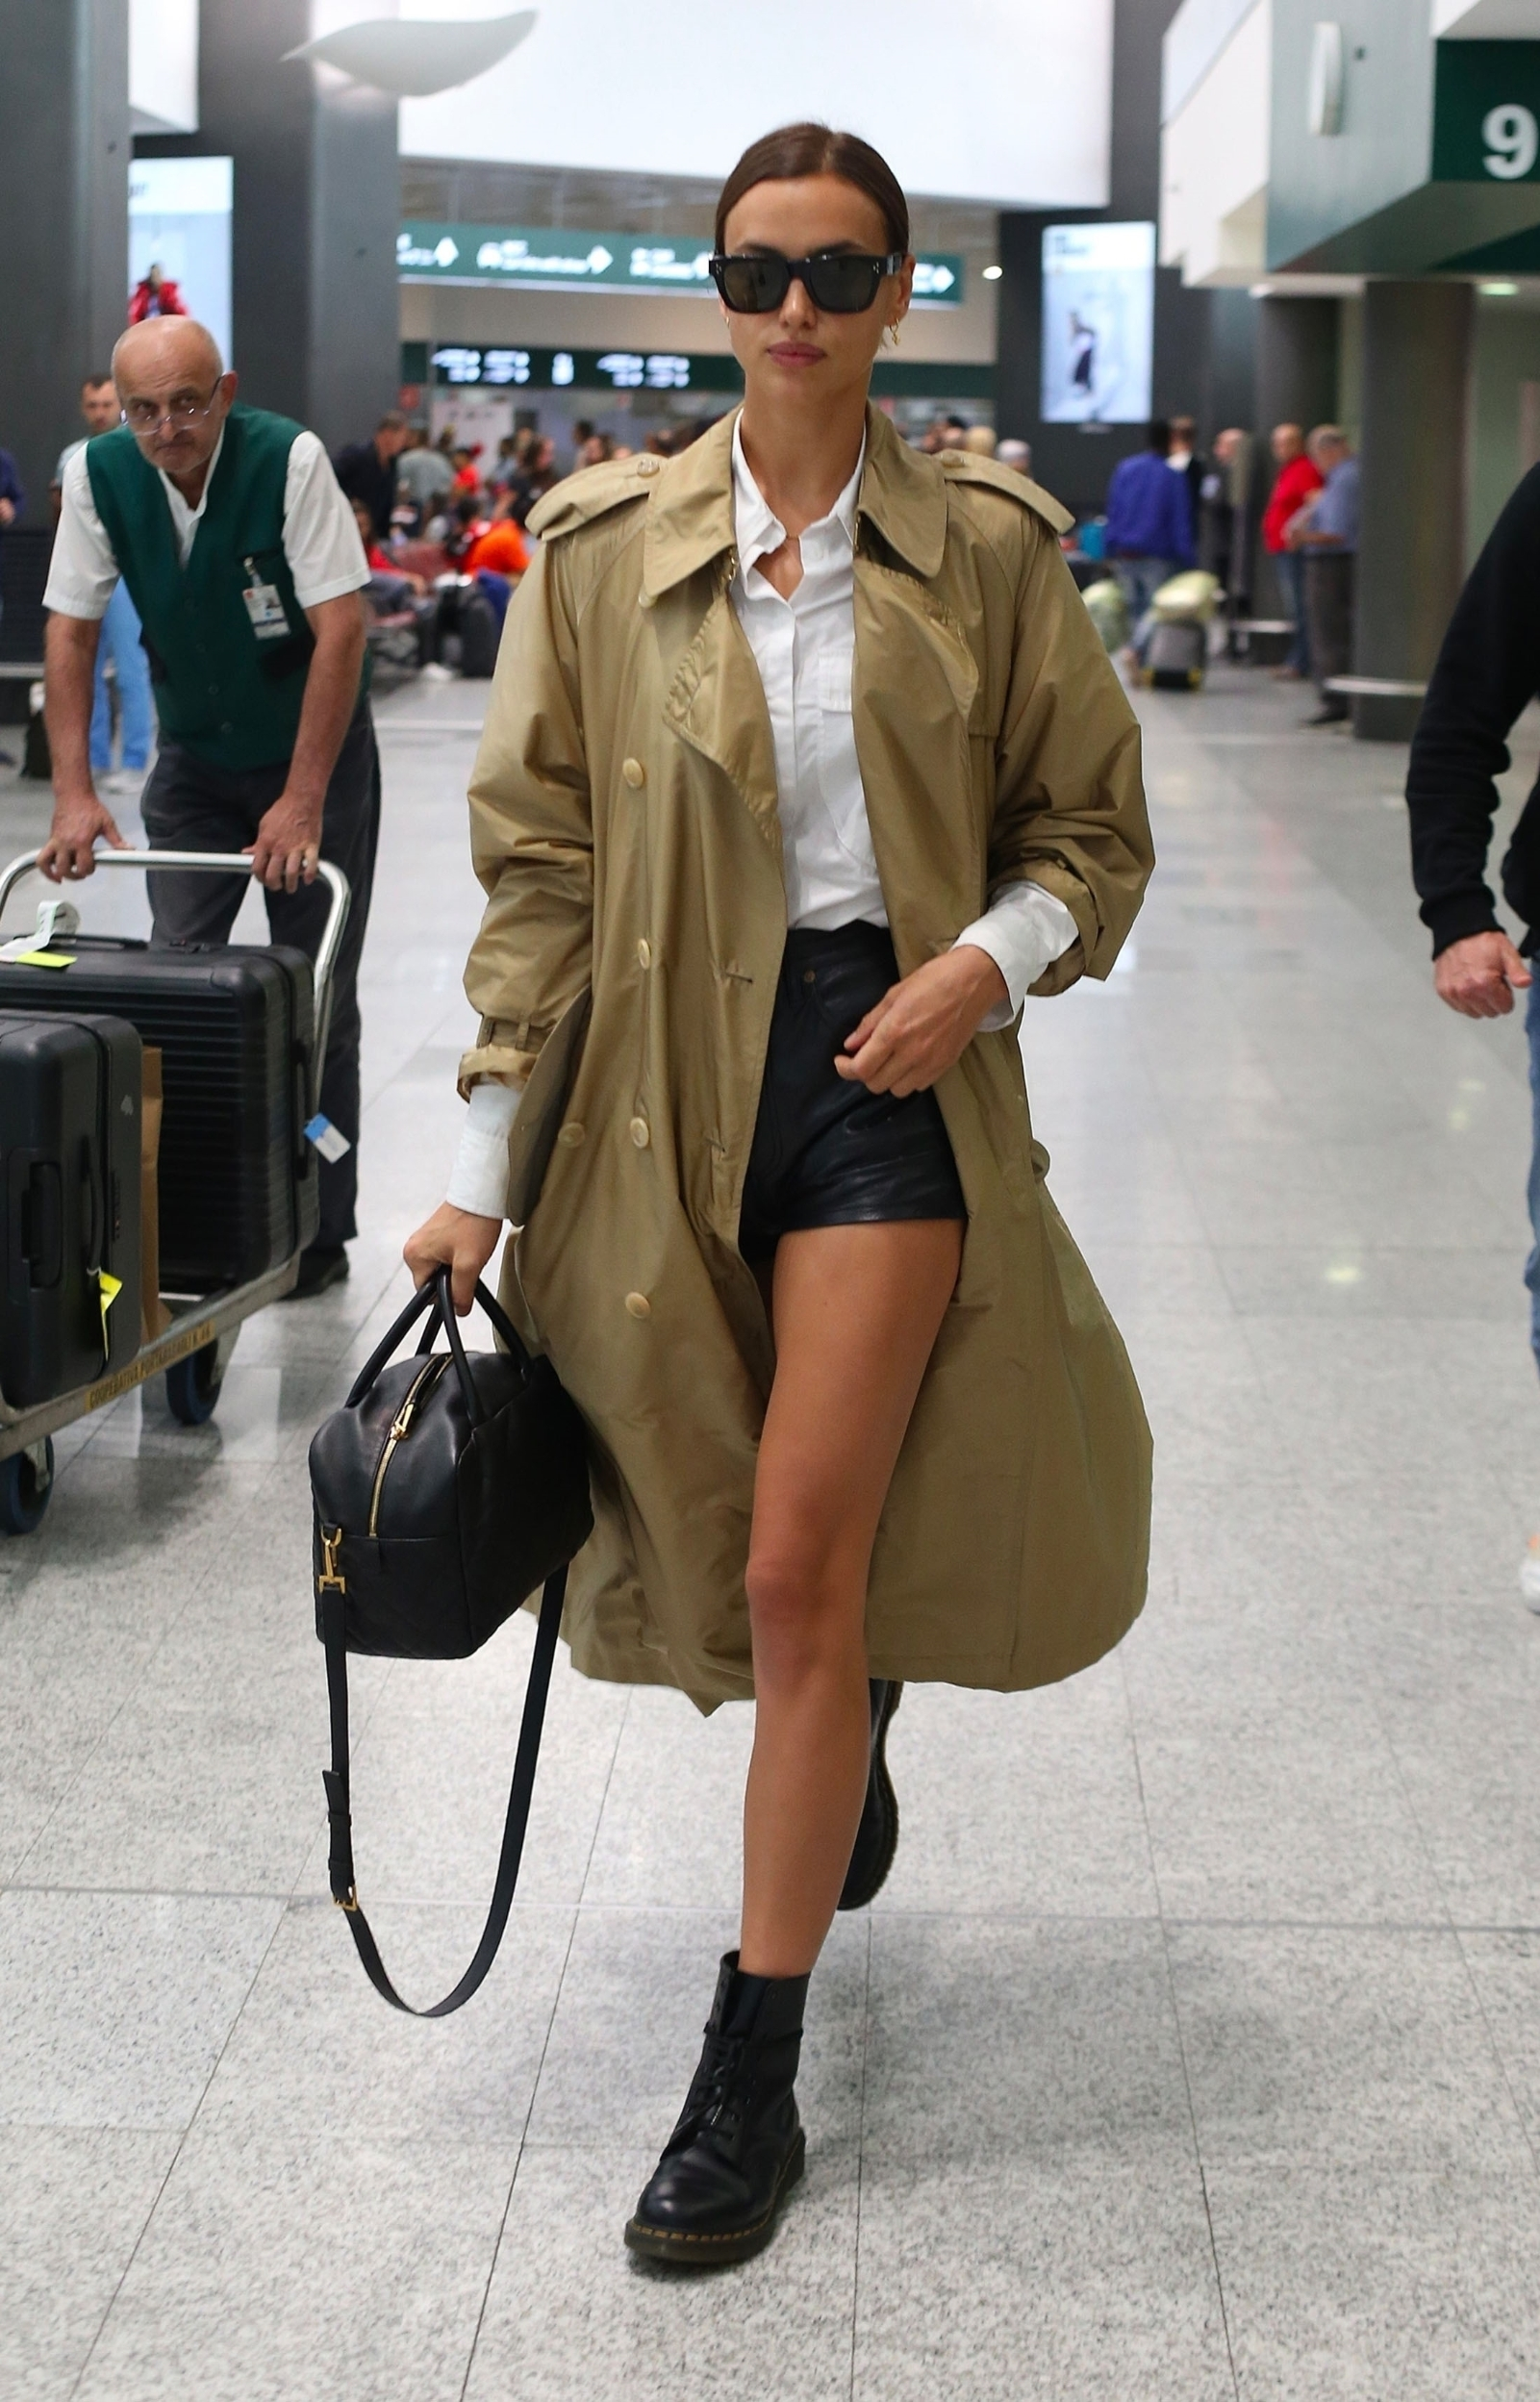 Milan, ITALY  - *EXCLUSIVE*  - The Russian Model Irina Shayk dressed in her long beige mac with dark shades arriving at Milan airport during Milan Fashion Week.  *UK Clients - Pictures Containing Children Please Pixelate Face Prior To Publication*, Image: 471587019, License: Rights-managed, Restrictions: RIGHTS: WORLDWIDE EXCEPT IN ITALY, Model Release: no, Credit line: Profimedia, Backgrid UK